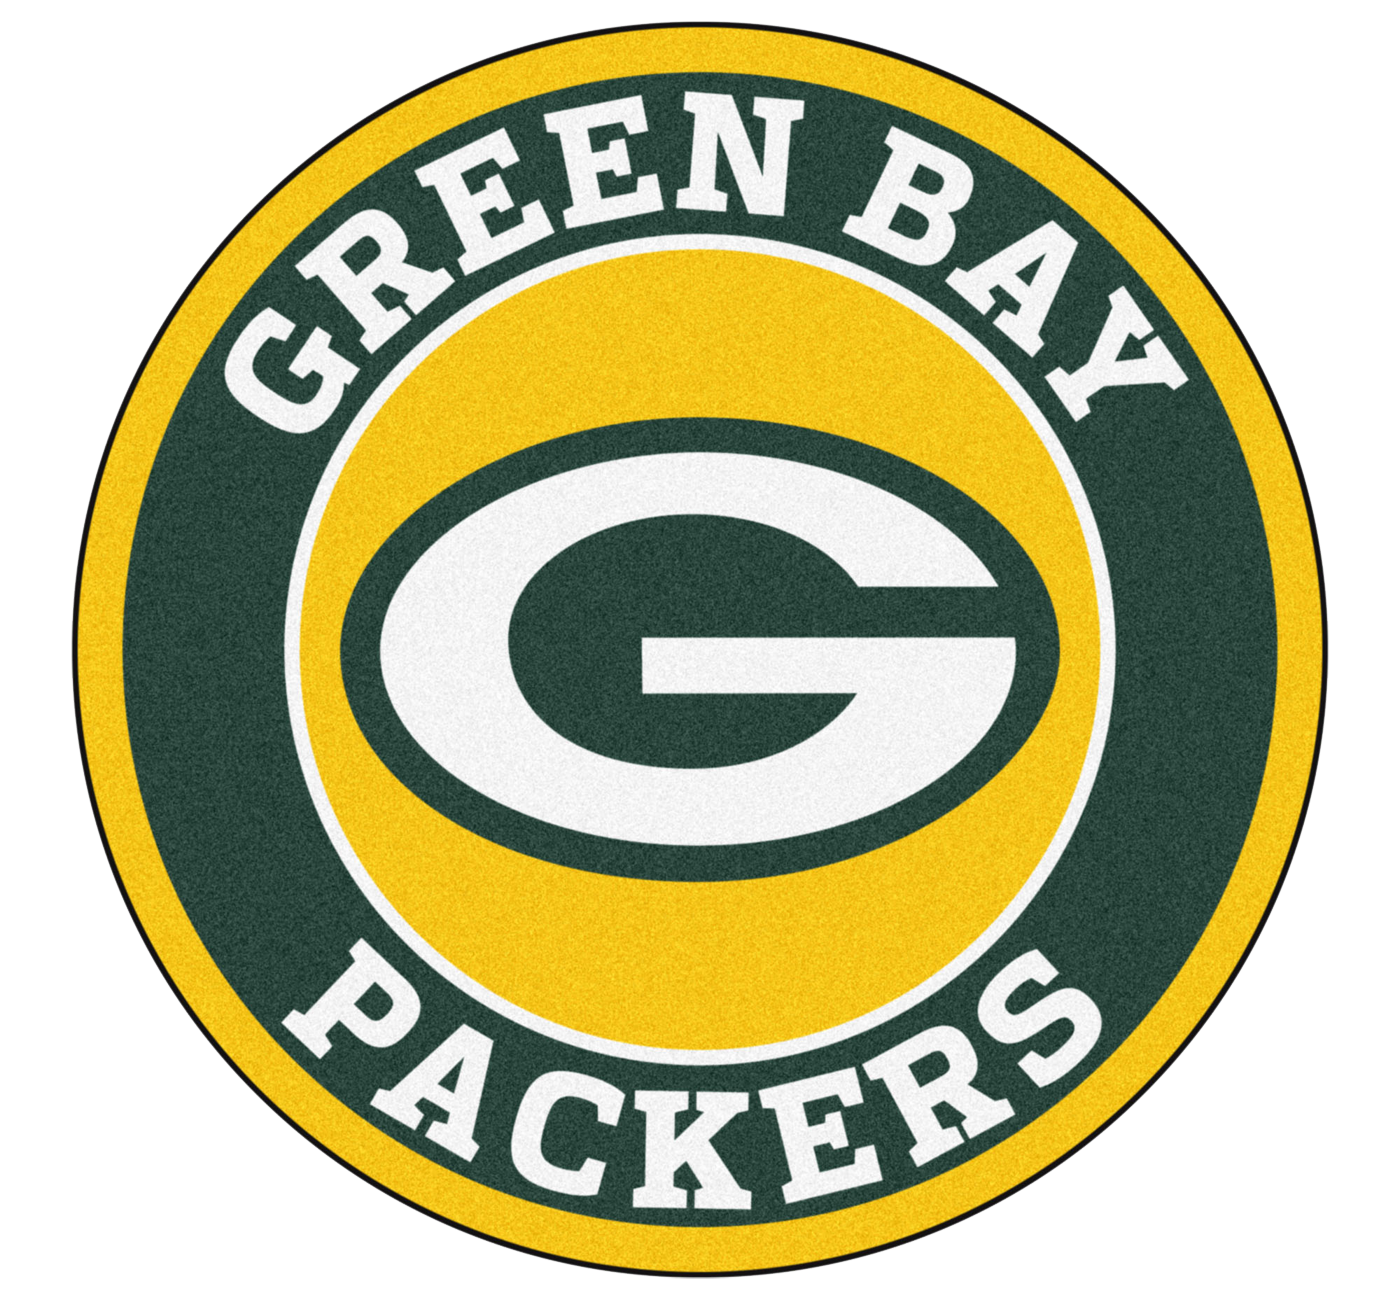 Green bay png. Packers logo symbol meaning